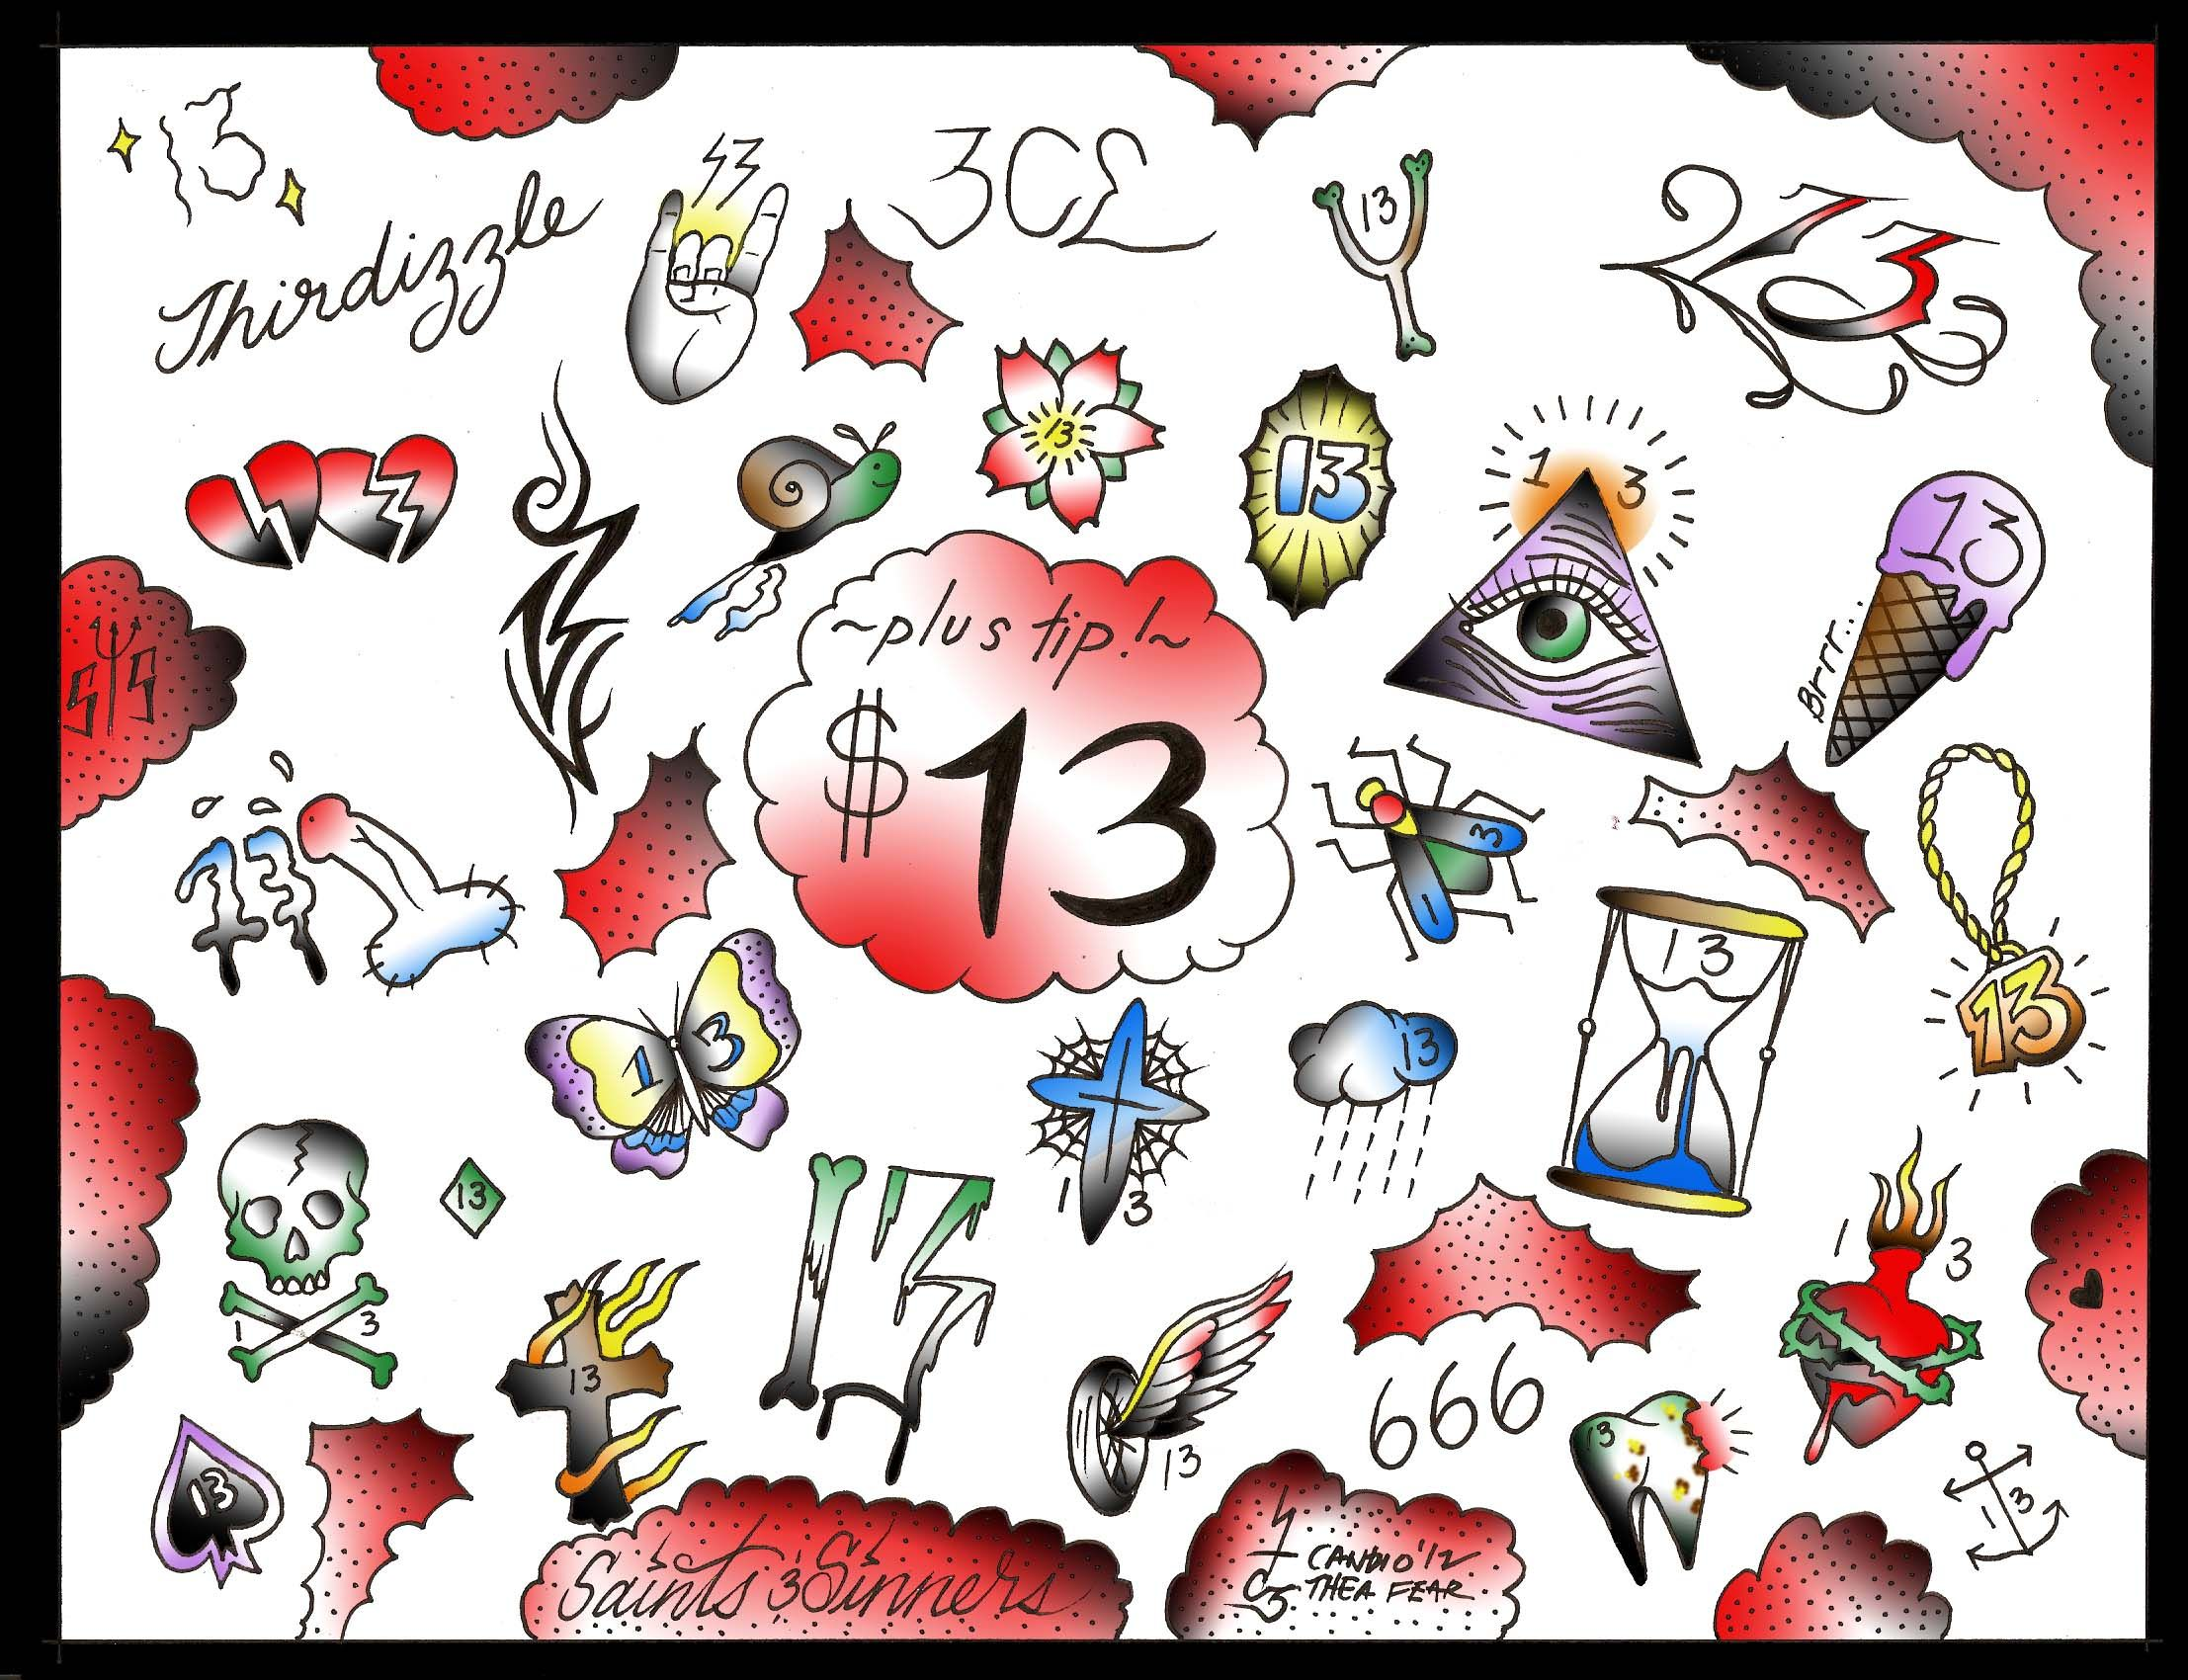 Friday The 13Th Tattoos On Pinterest Friday The 13Th Ideas And Designs